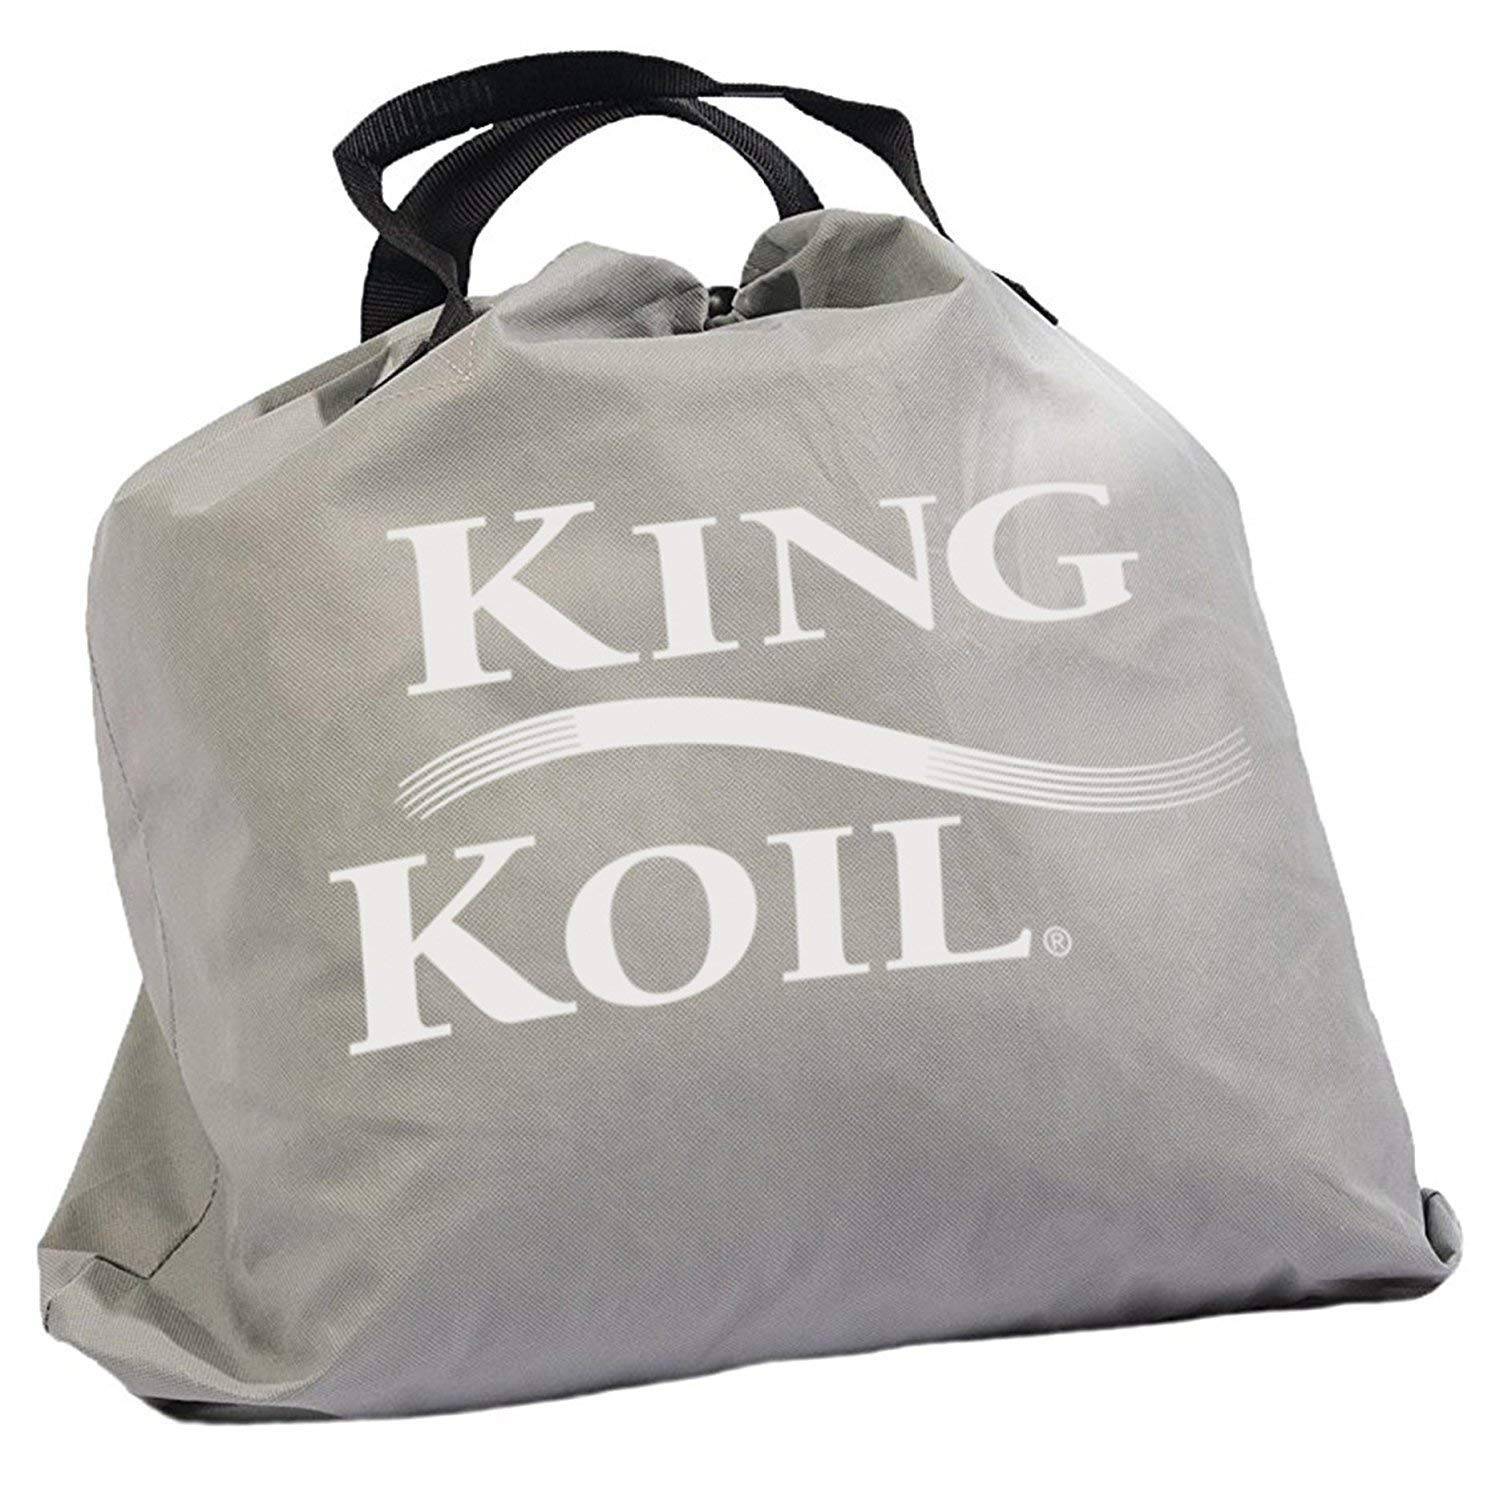 King Koil Luxury topratedhomeproducts